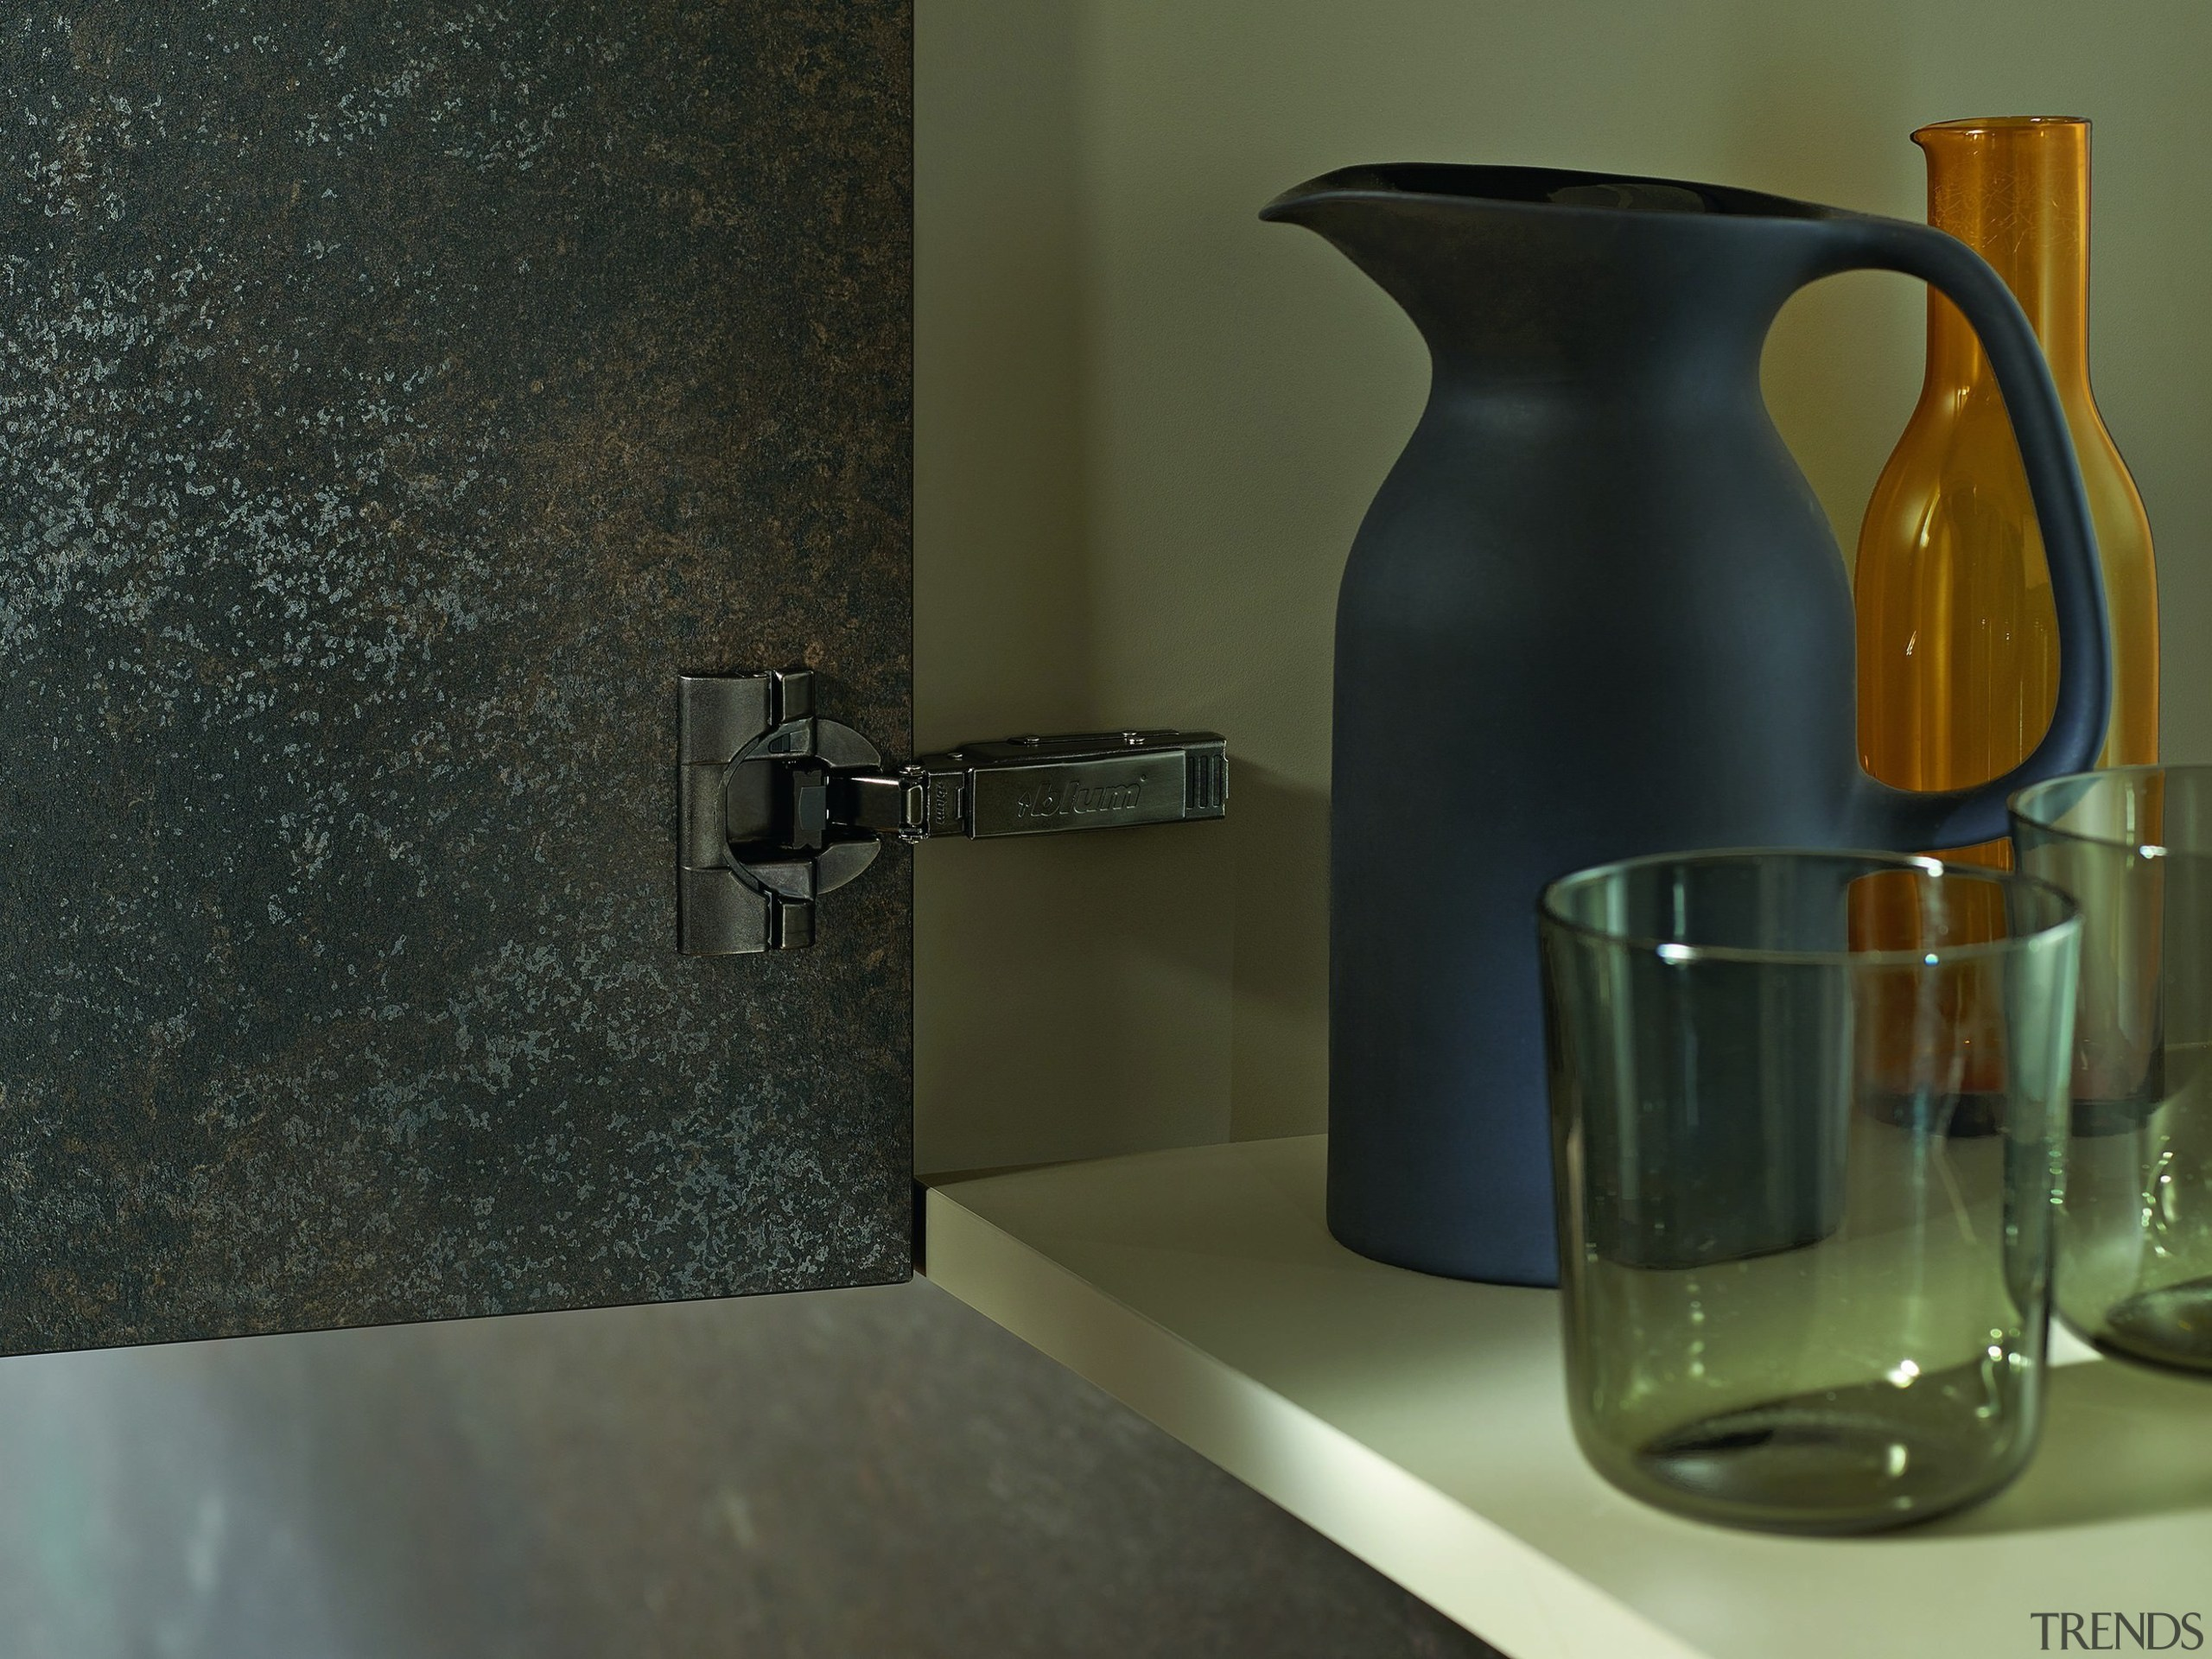 BLUMOTION can be switched on or off – ceramic, flooring, glass, interior design, product design, still life, still life photography, tap, black, brown